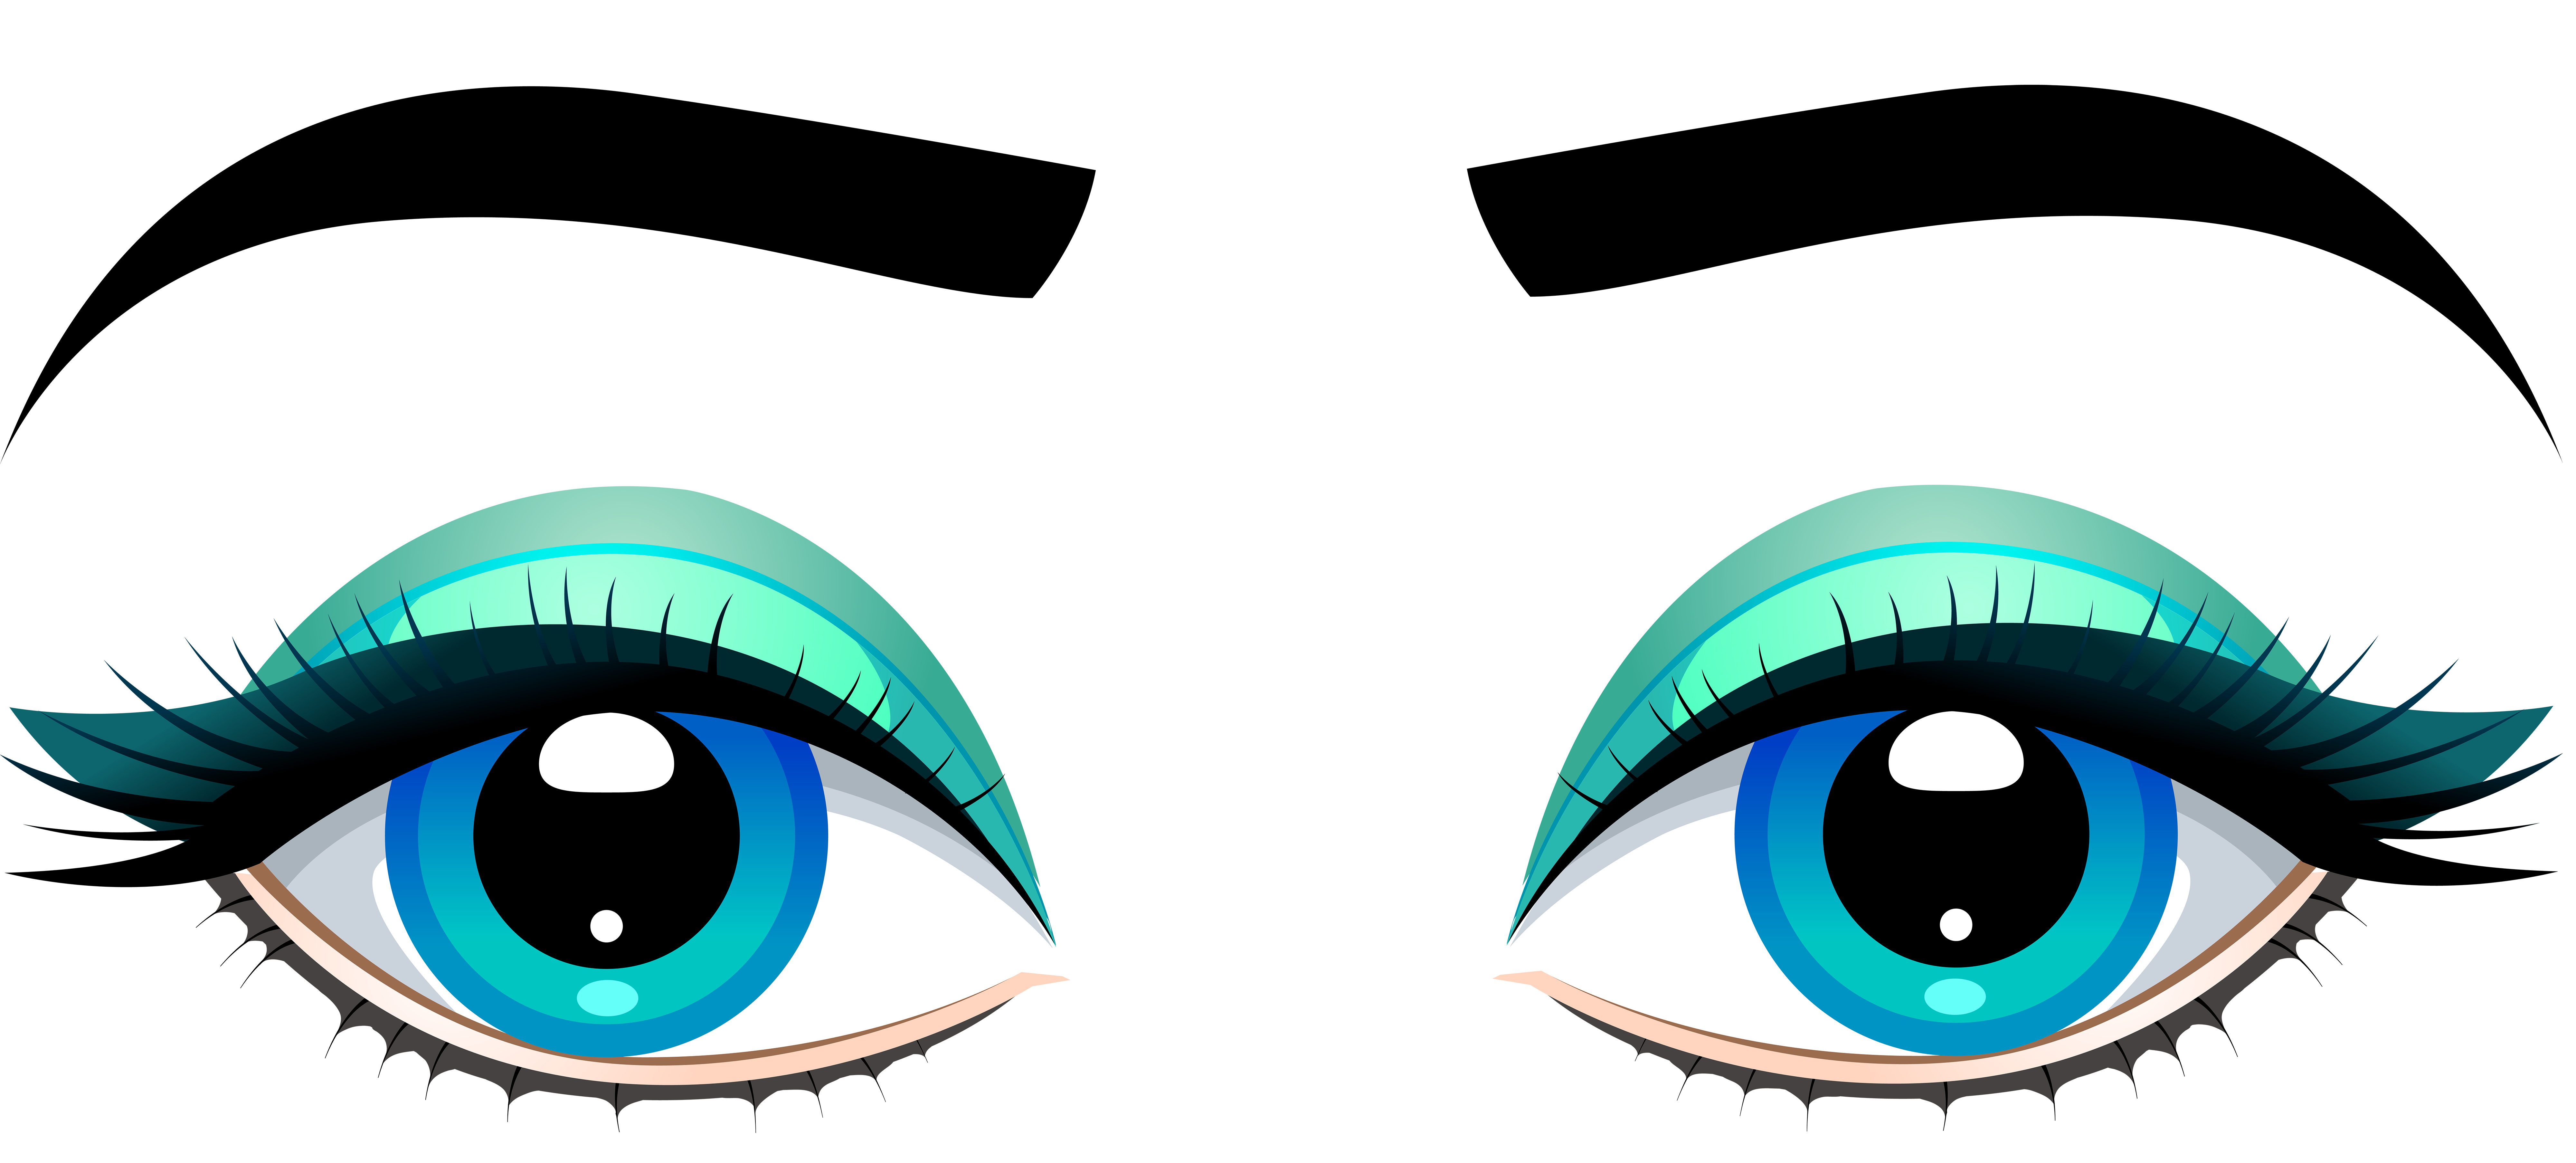 Blue Eyes clipart #1, Download drawings